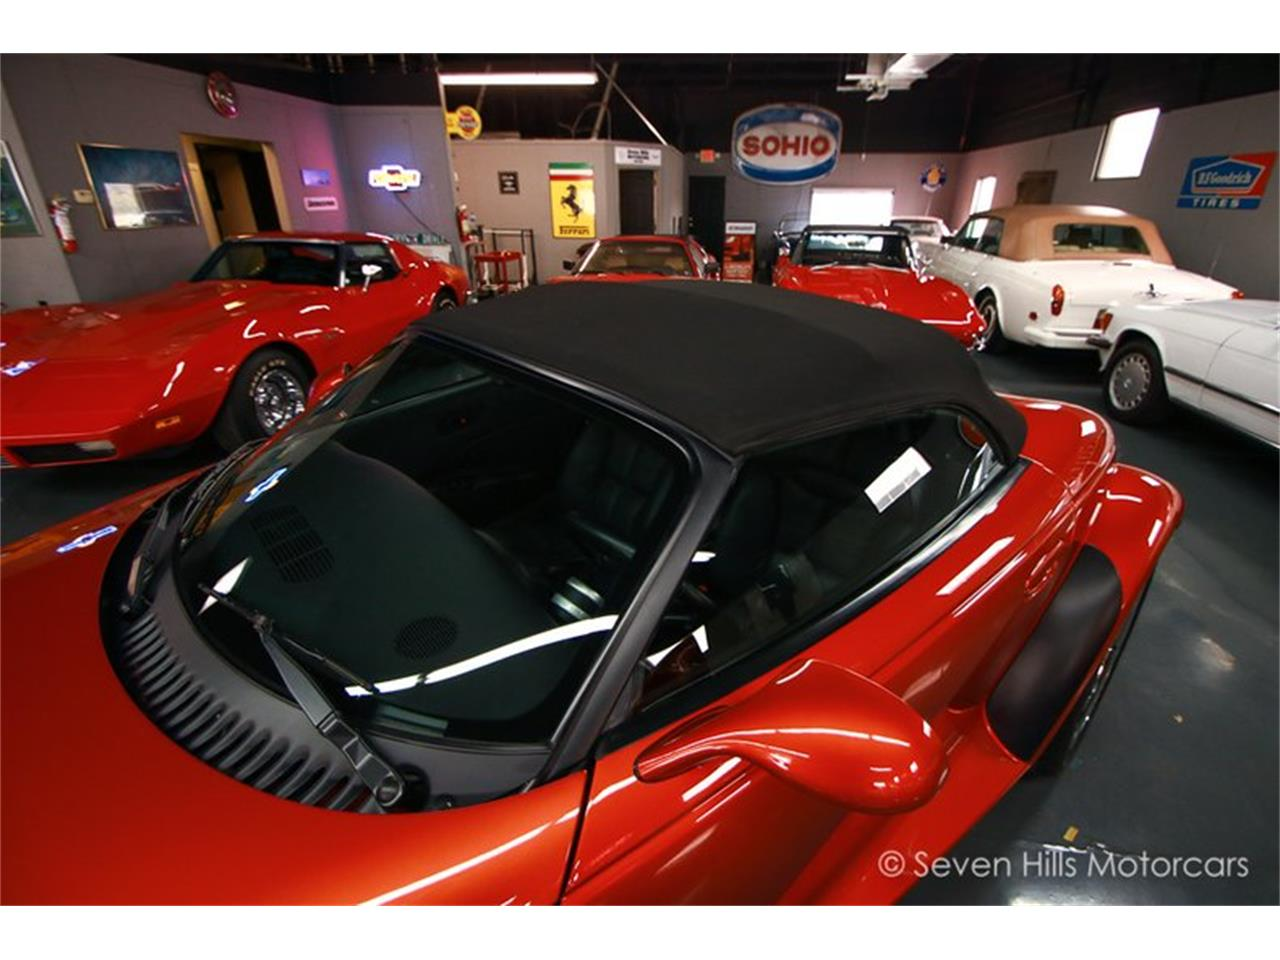 Large Picture of 2001 Plymouth Prowler - $37,900.00 Offered by Seven Hills Motorcars - PW1N